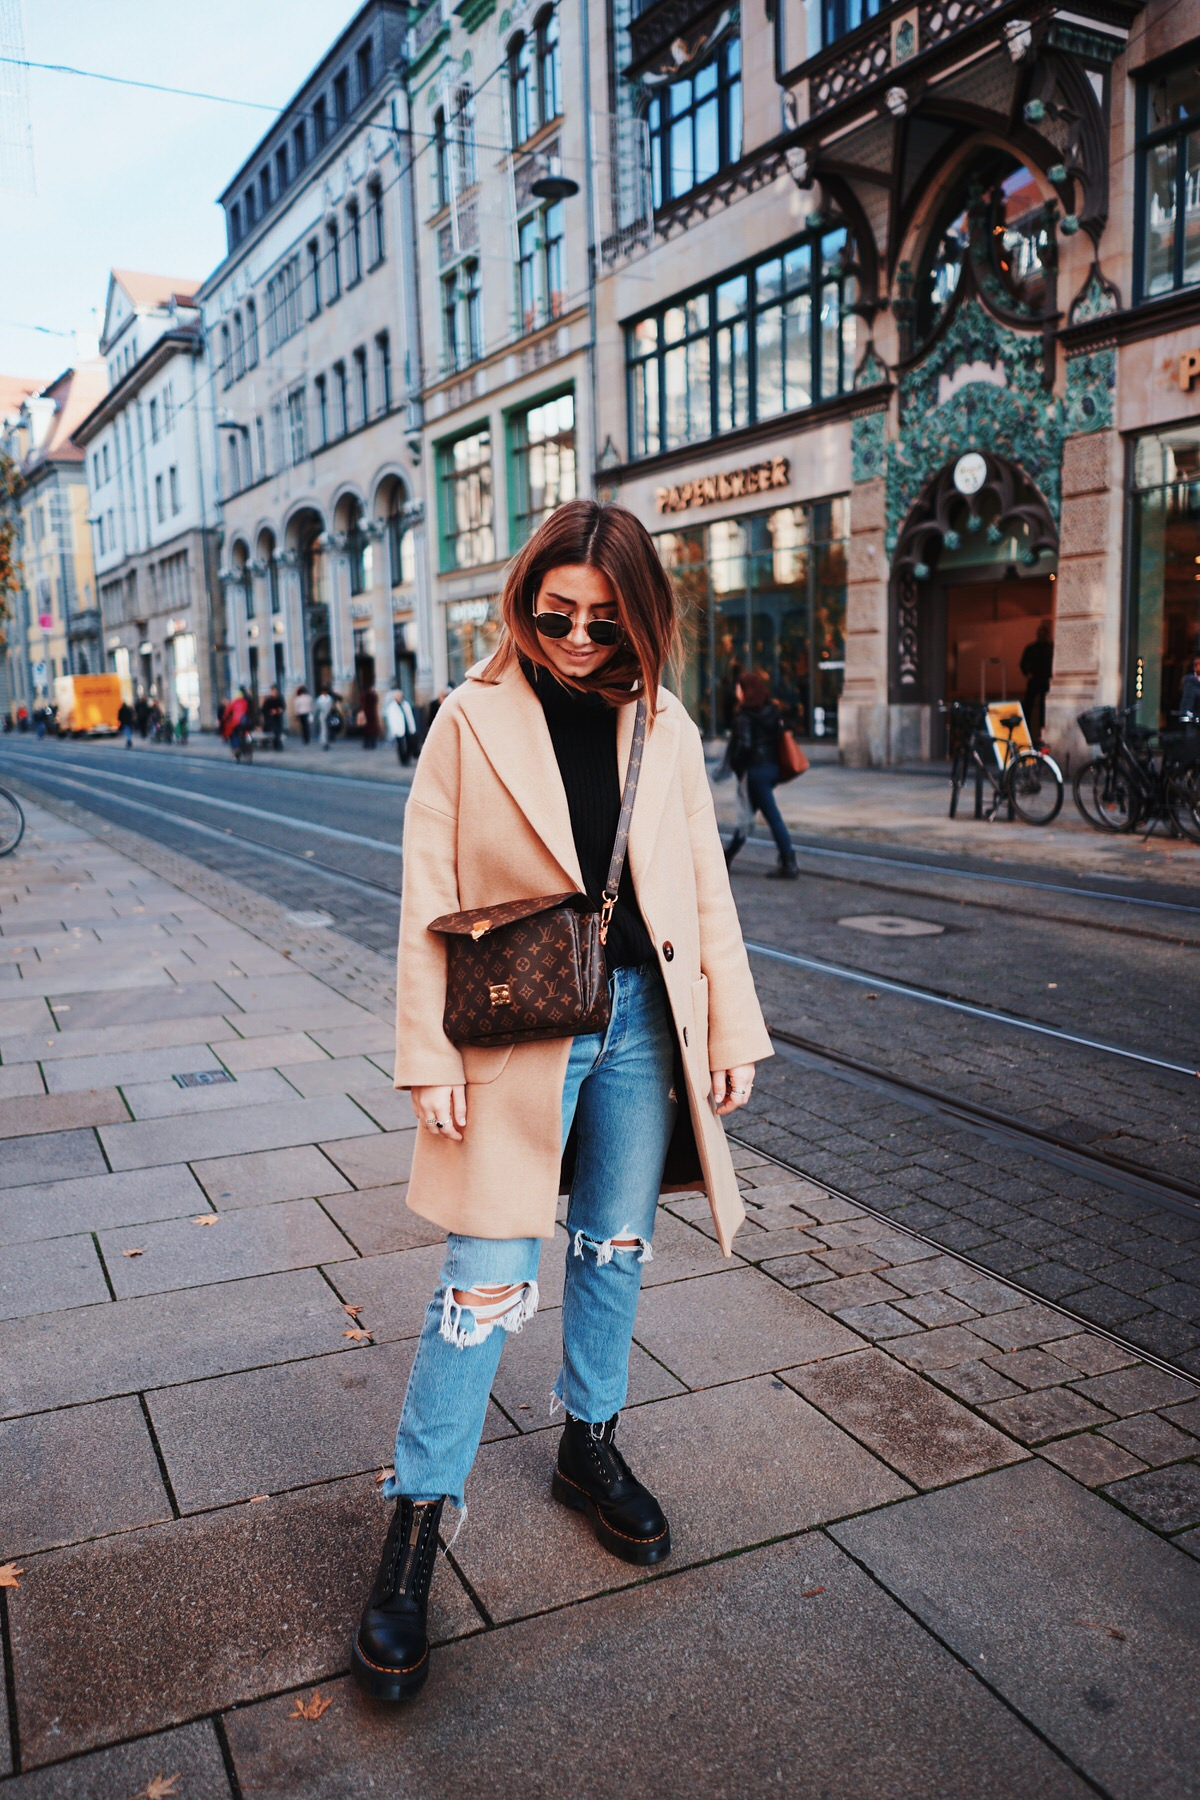 Levi's Jeans, Camel Coat, Mantel, Dr. Martens Boots, Louis Vuitton Pochette Metis, H&M, Turtleneck Sweater, Rollkragenpullover, Ray Ban Round Metal